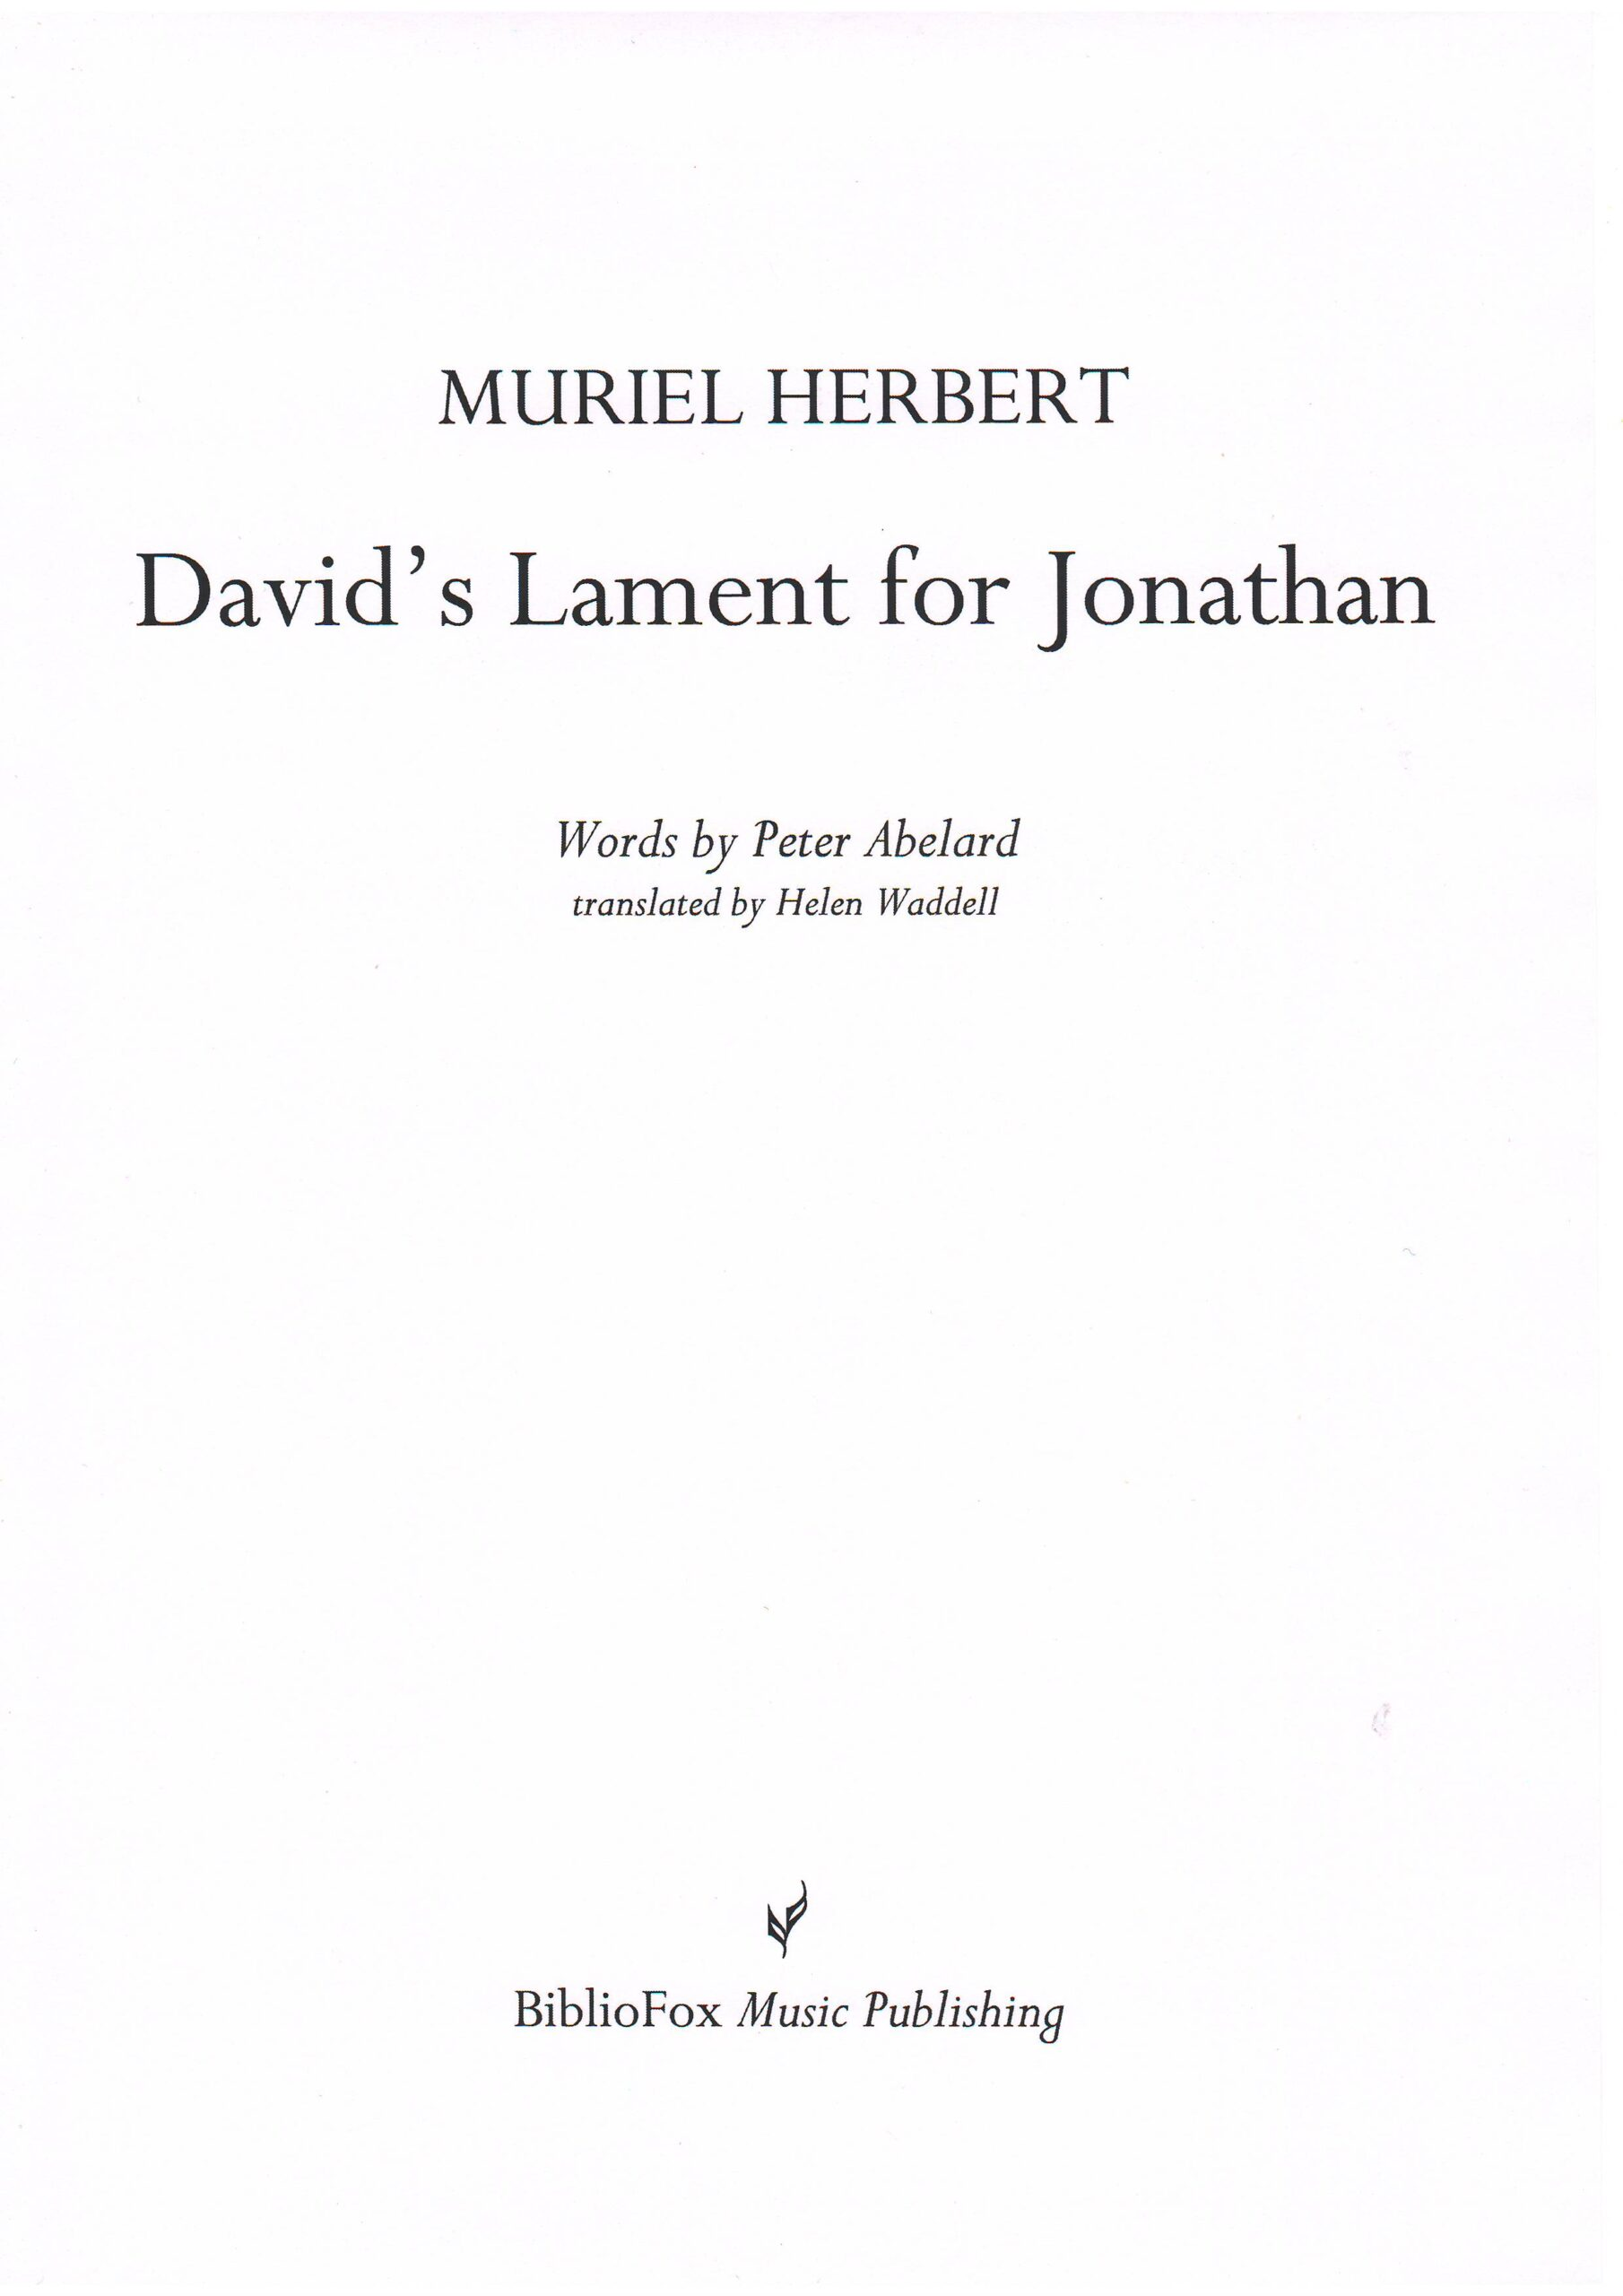 Cover page of Herbert David's Lament for Jonathan